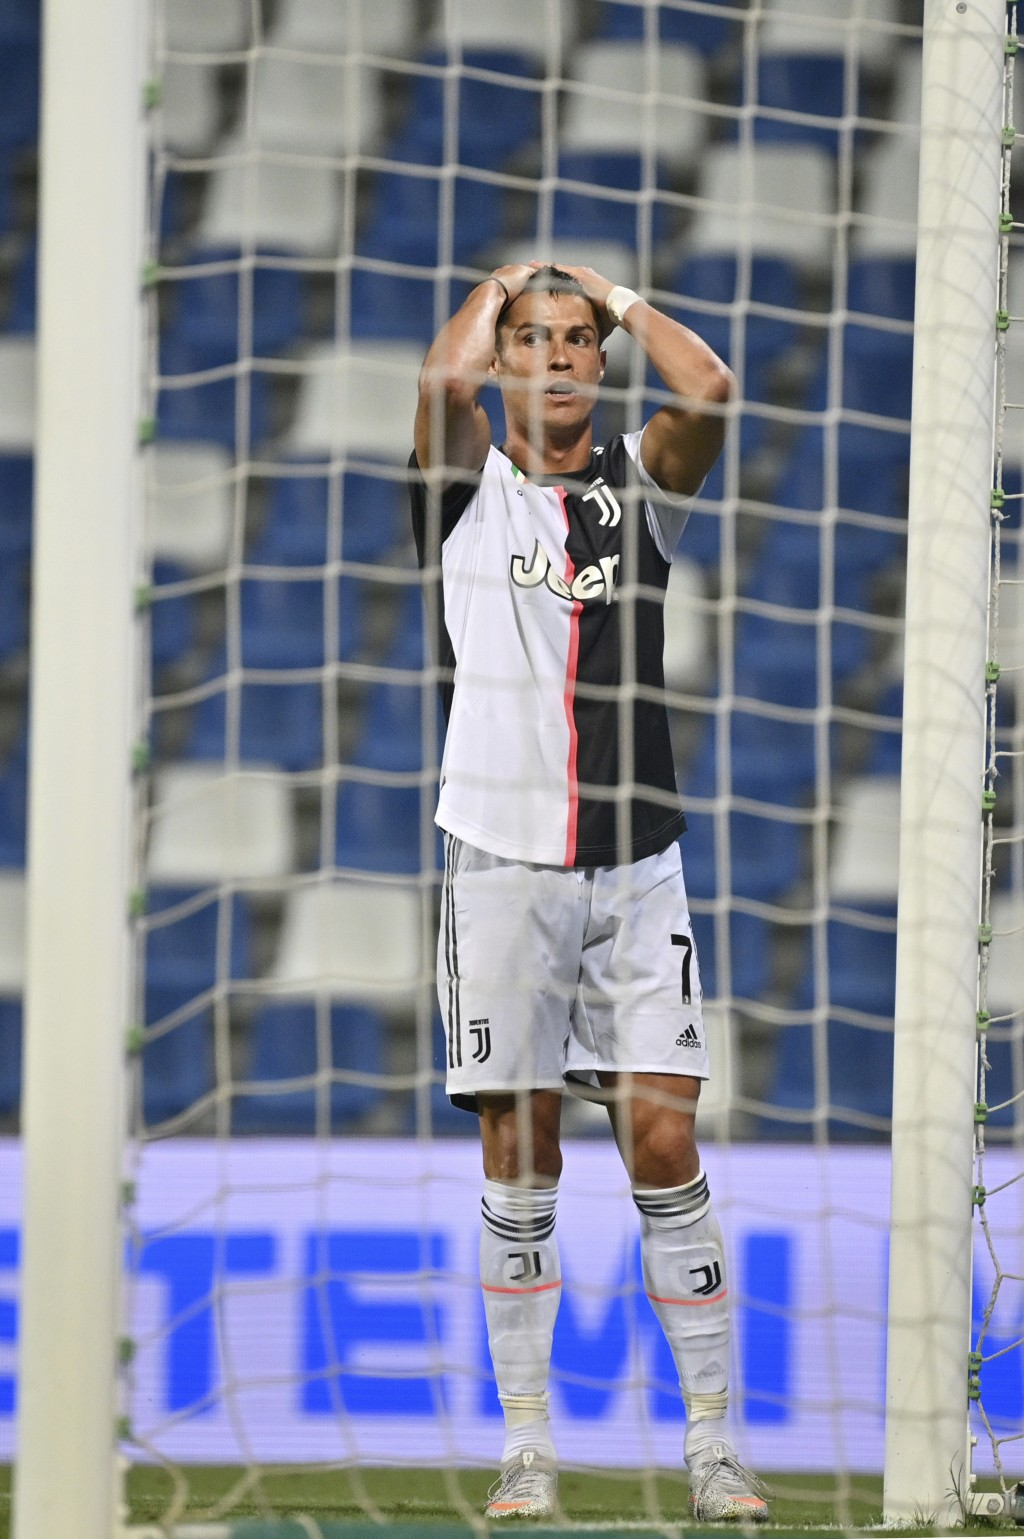 Juventus' Cristiano Ronaldo reacts during a Serie A soccer match between Sassuolo and Juventus at the Mapei Stadium in Reggio Emilia, Italy, Wednesday...